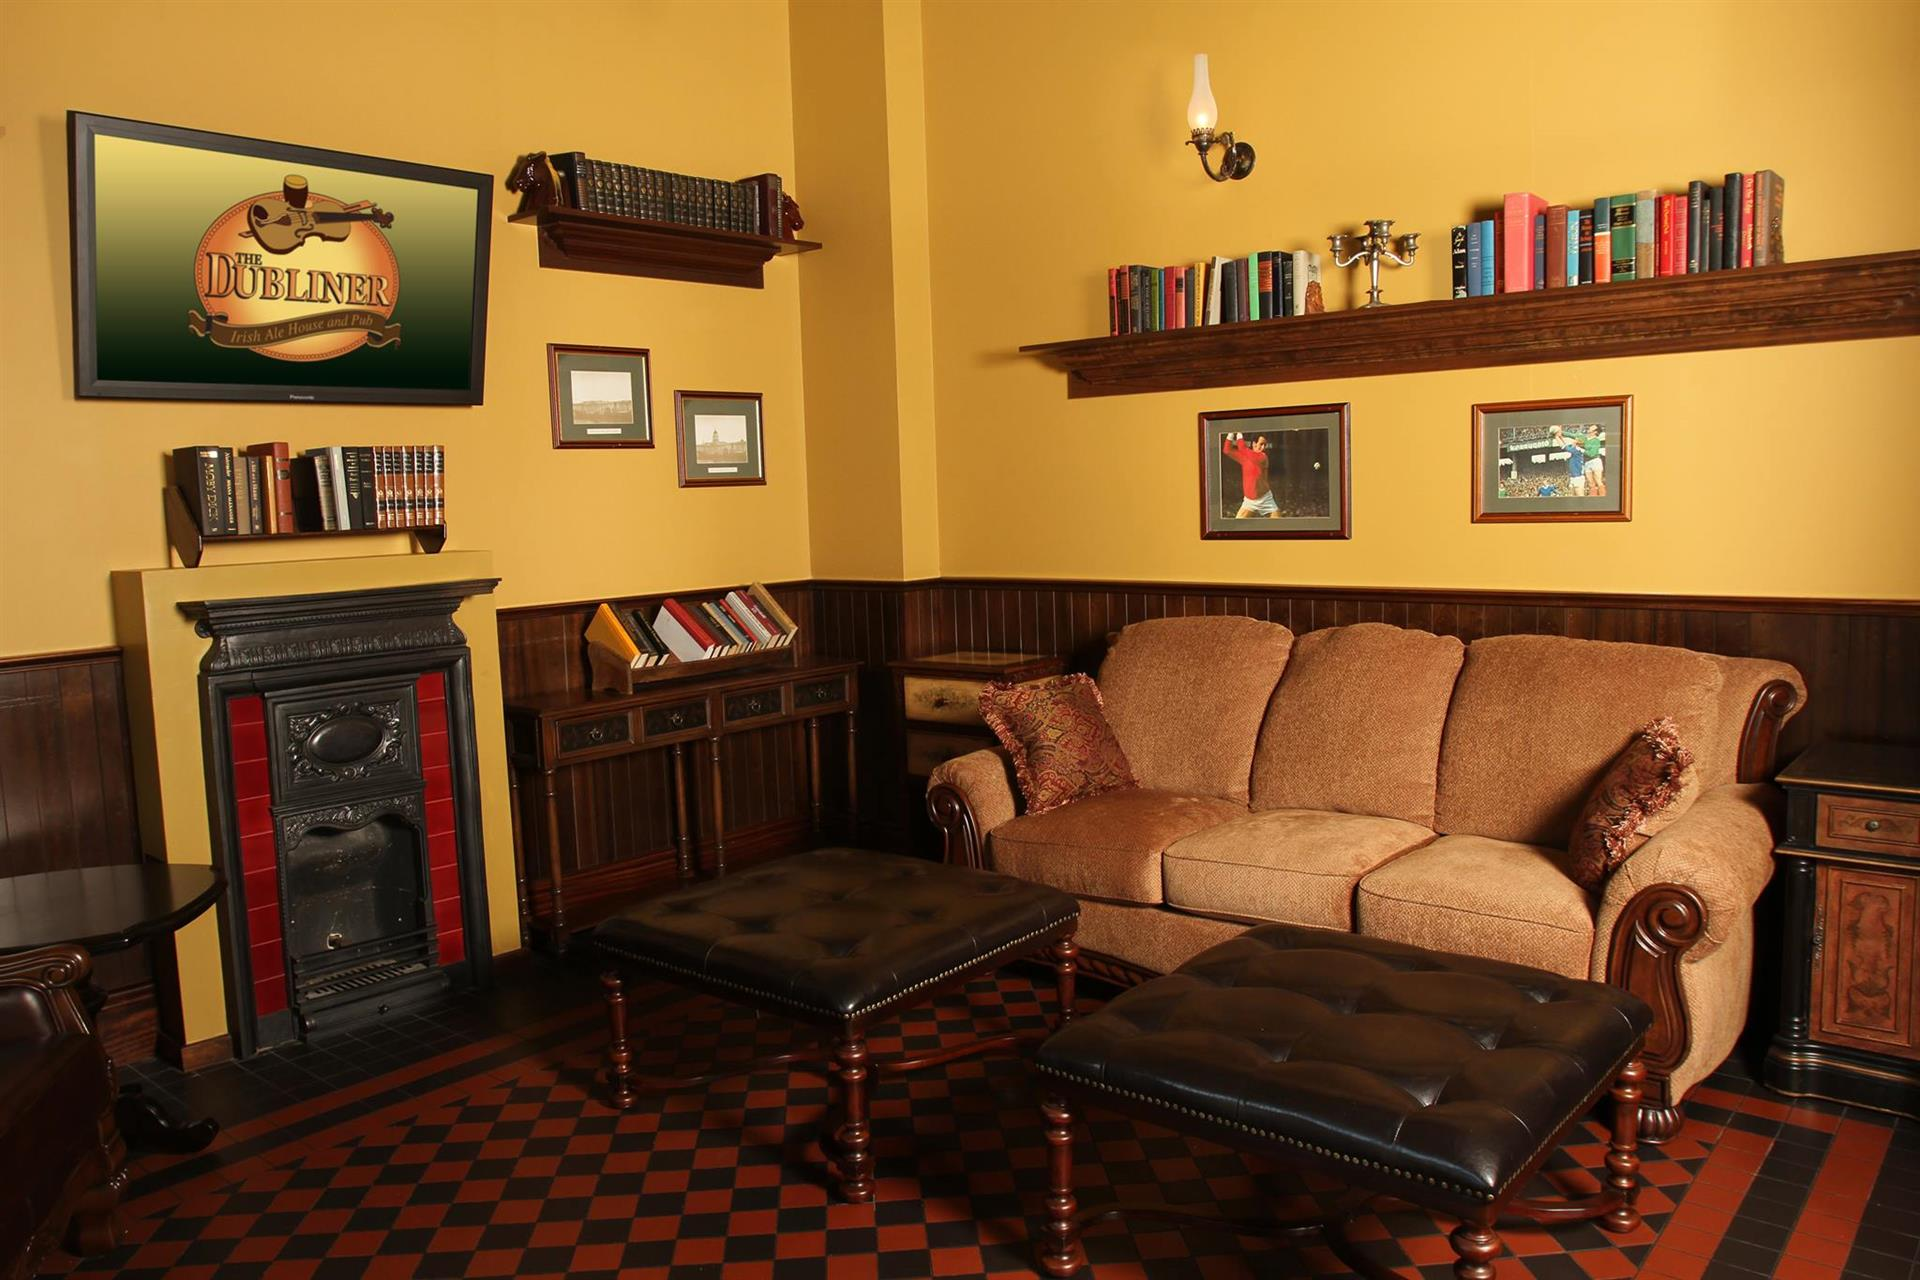 A room in The Dublin with shelves of books and a couch with a coffee table